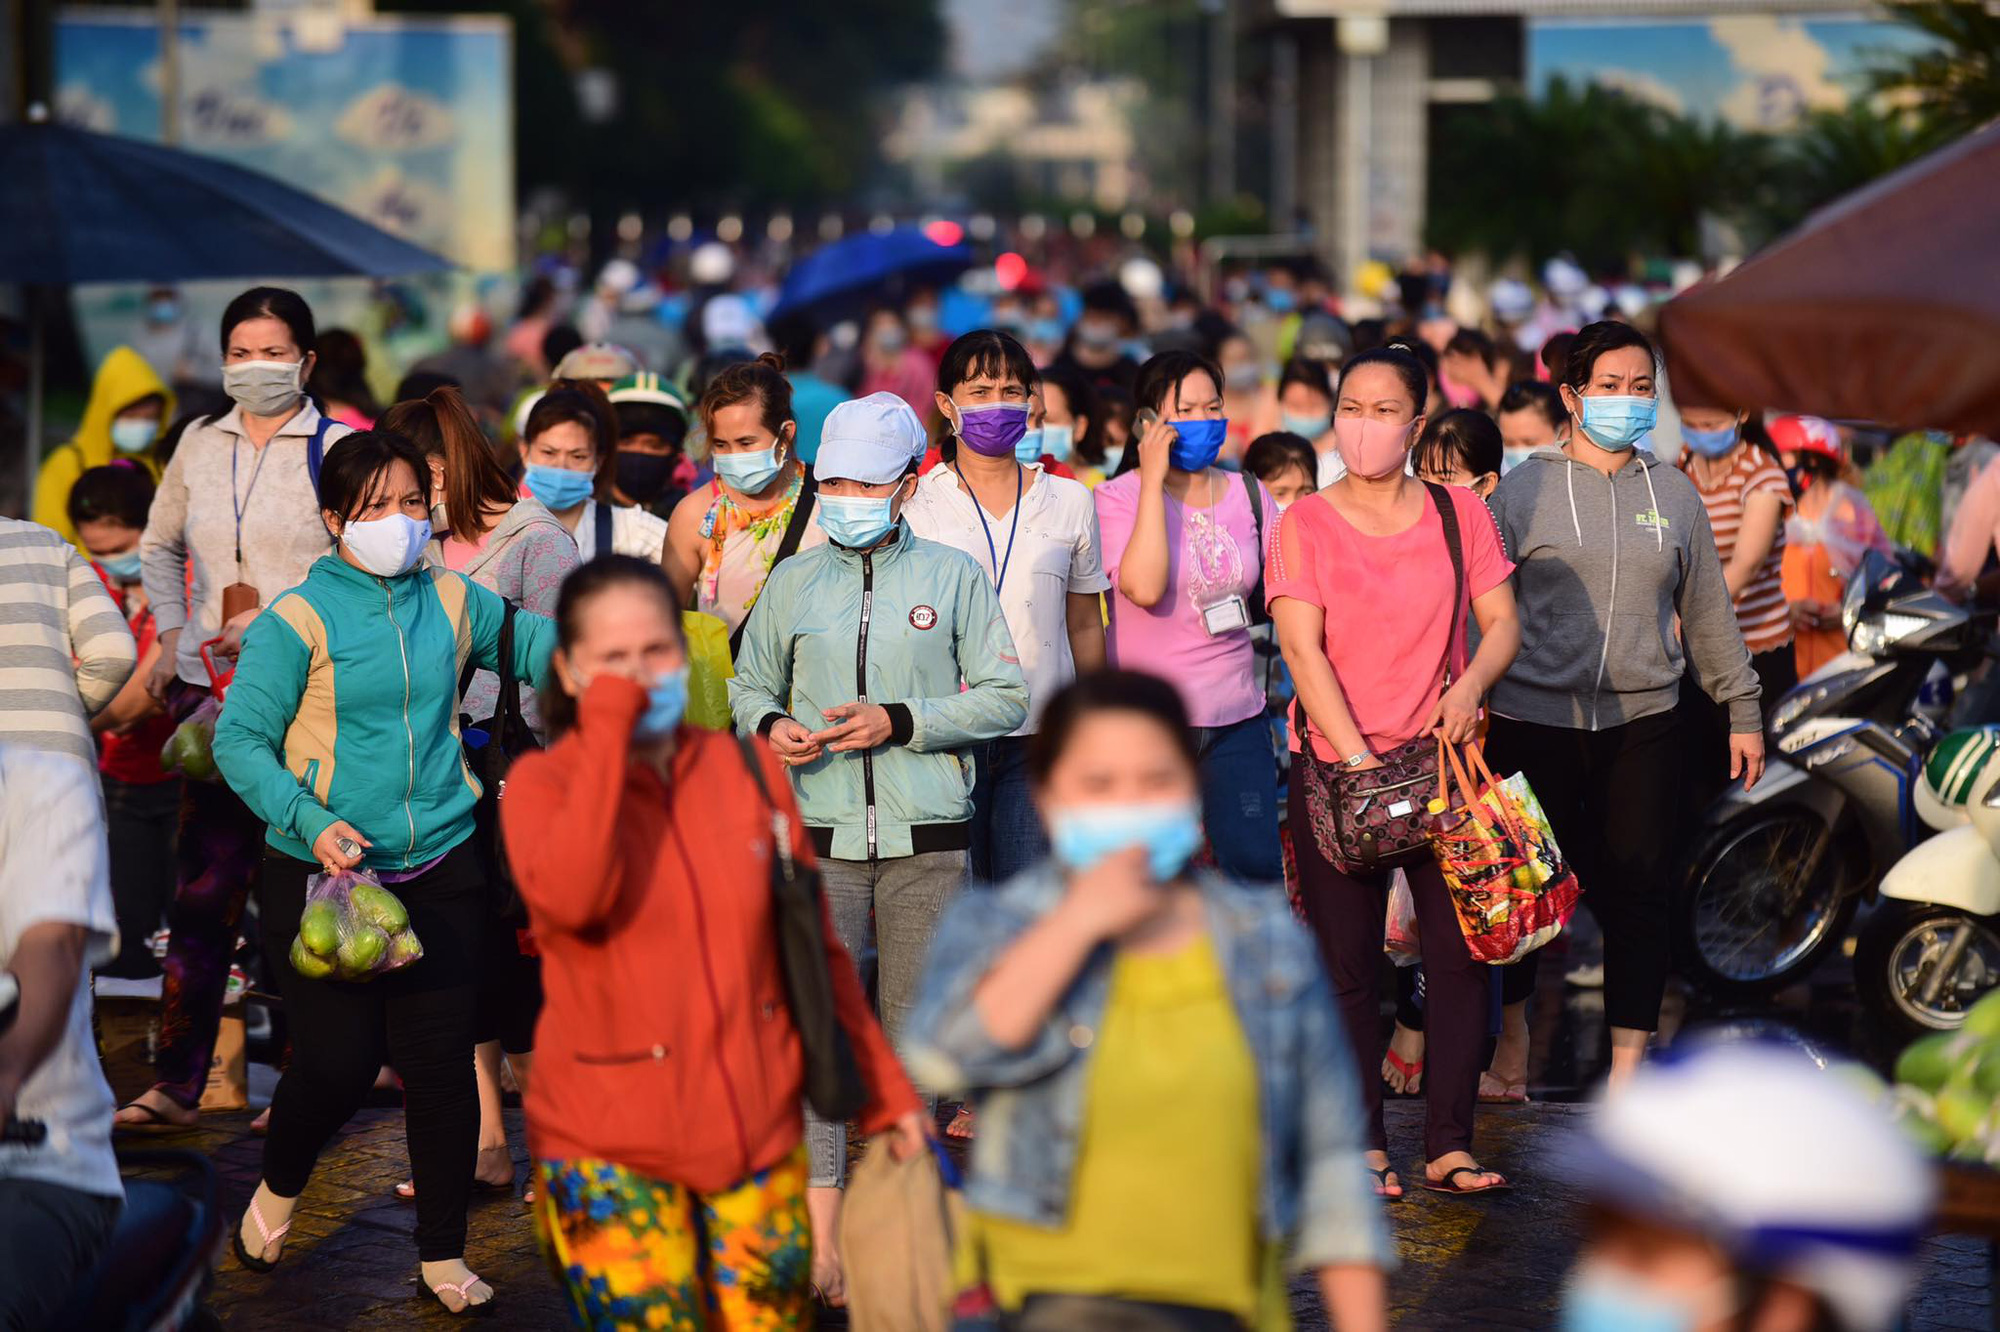 Saigon firm with 70,000 workers allowed to resume operations following brief shutdown